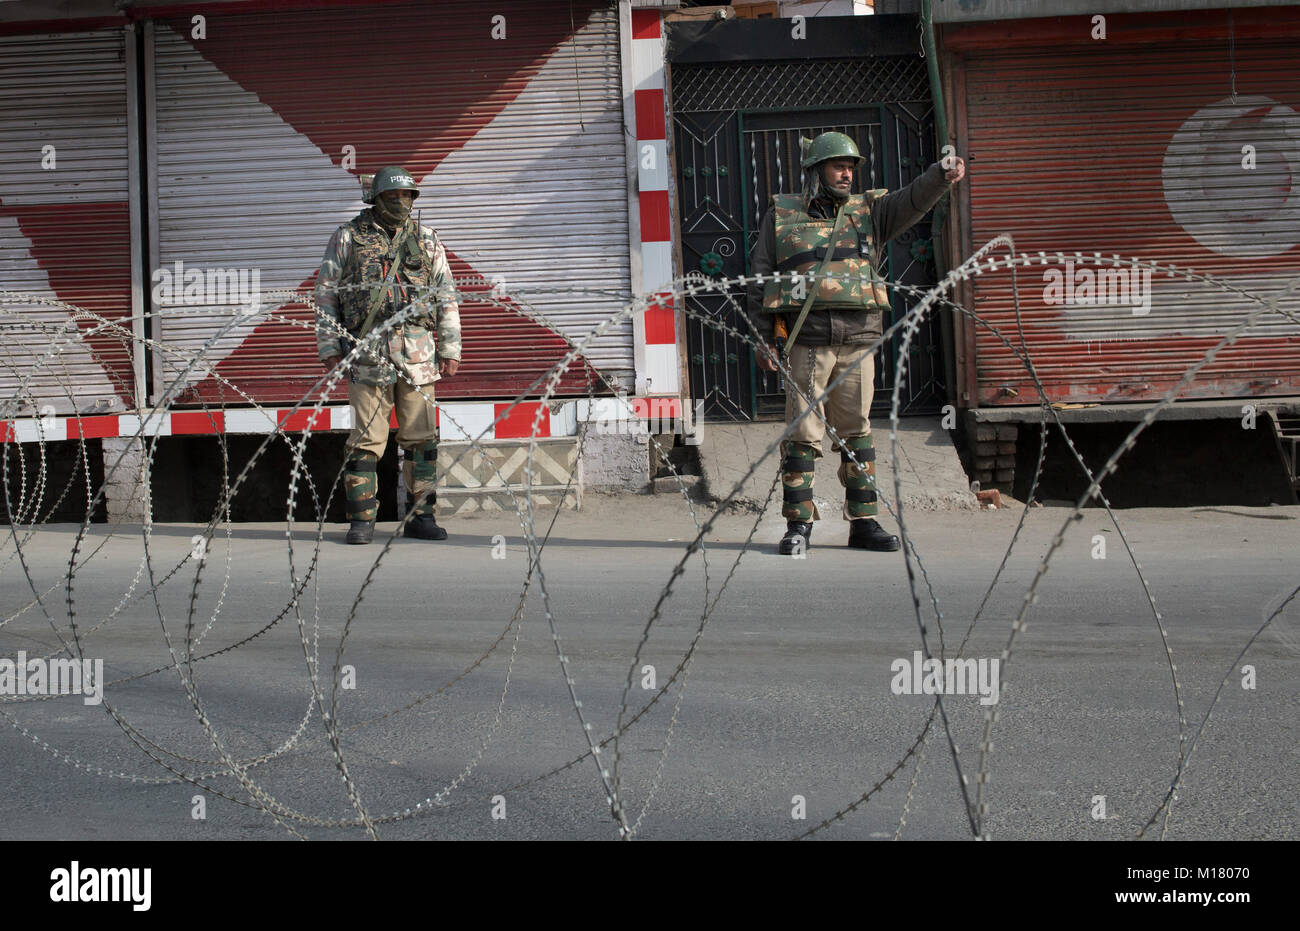 Srinagar, Indian-controlled Kashmir. 28th Jan, 2018. Indian paramilitary troopers stand guard near a barbed wire - Stock Image